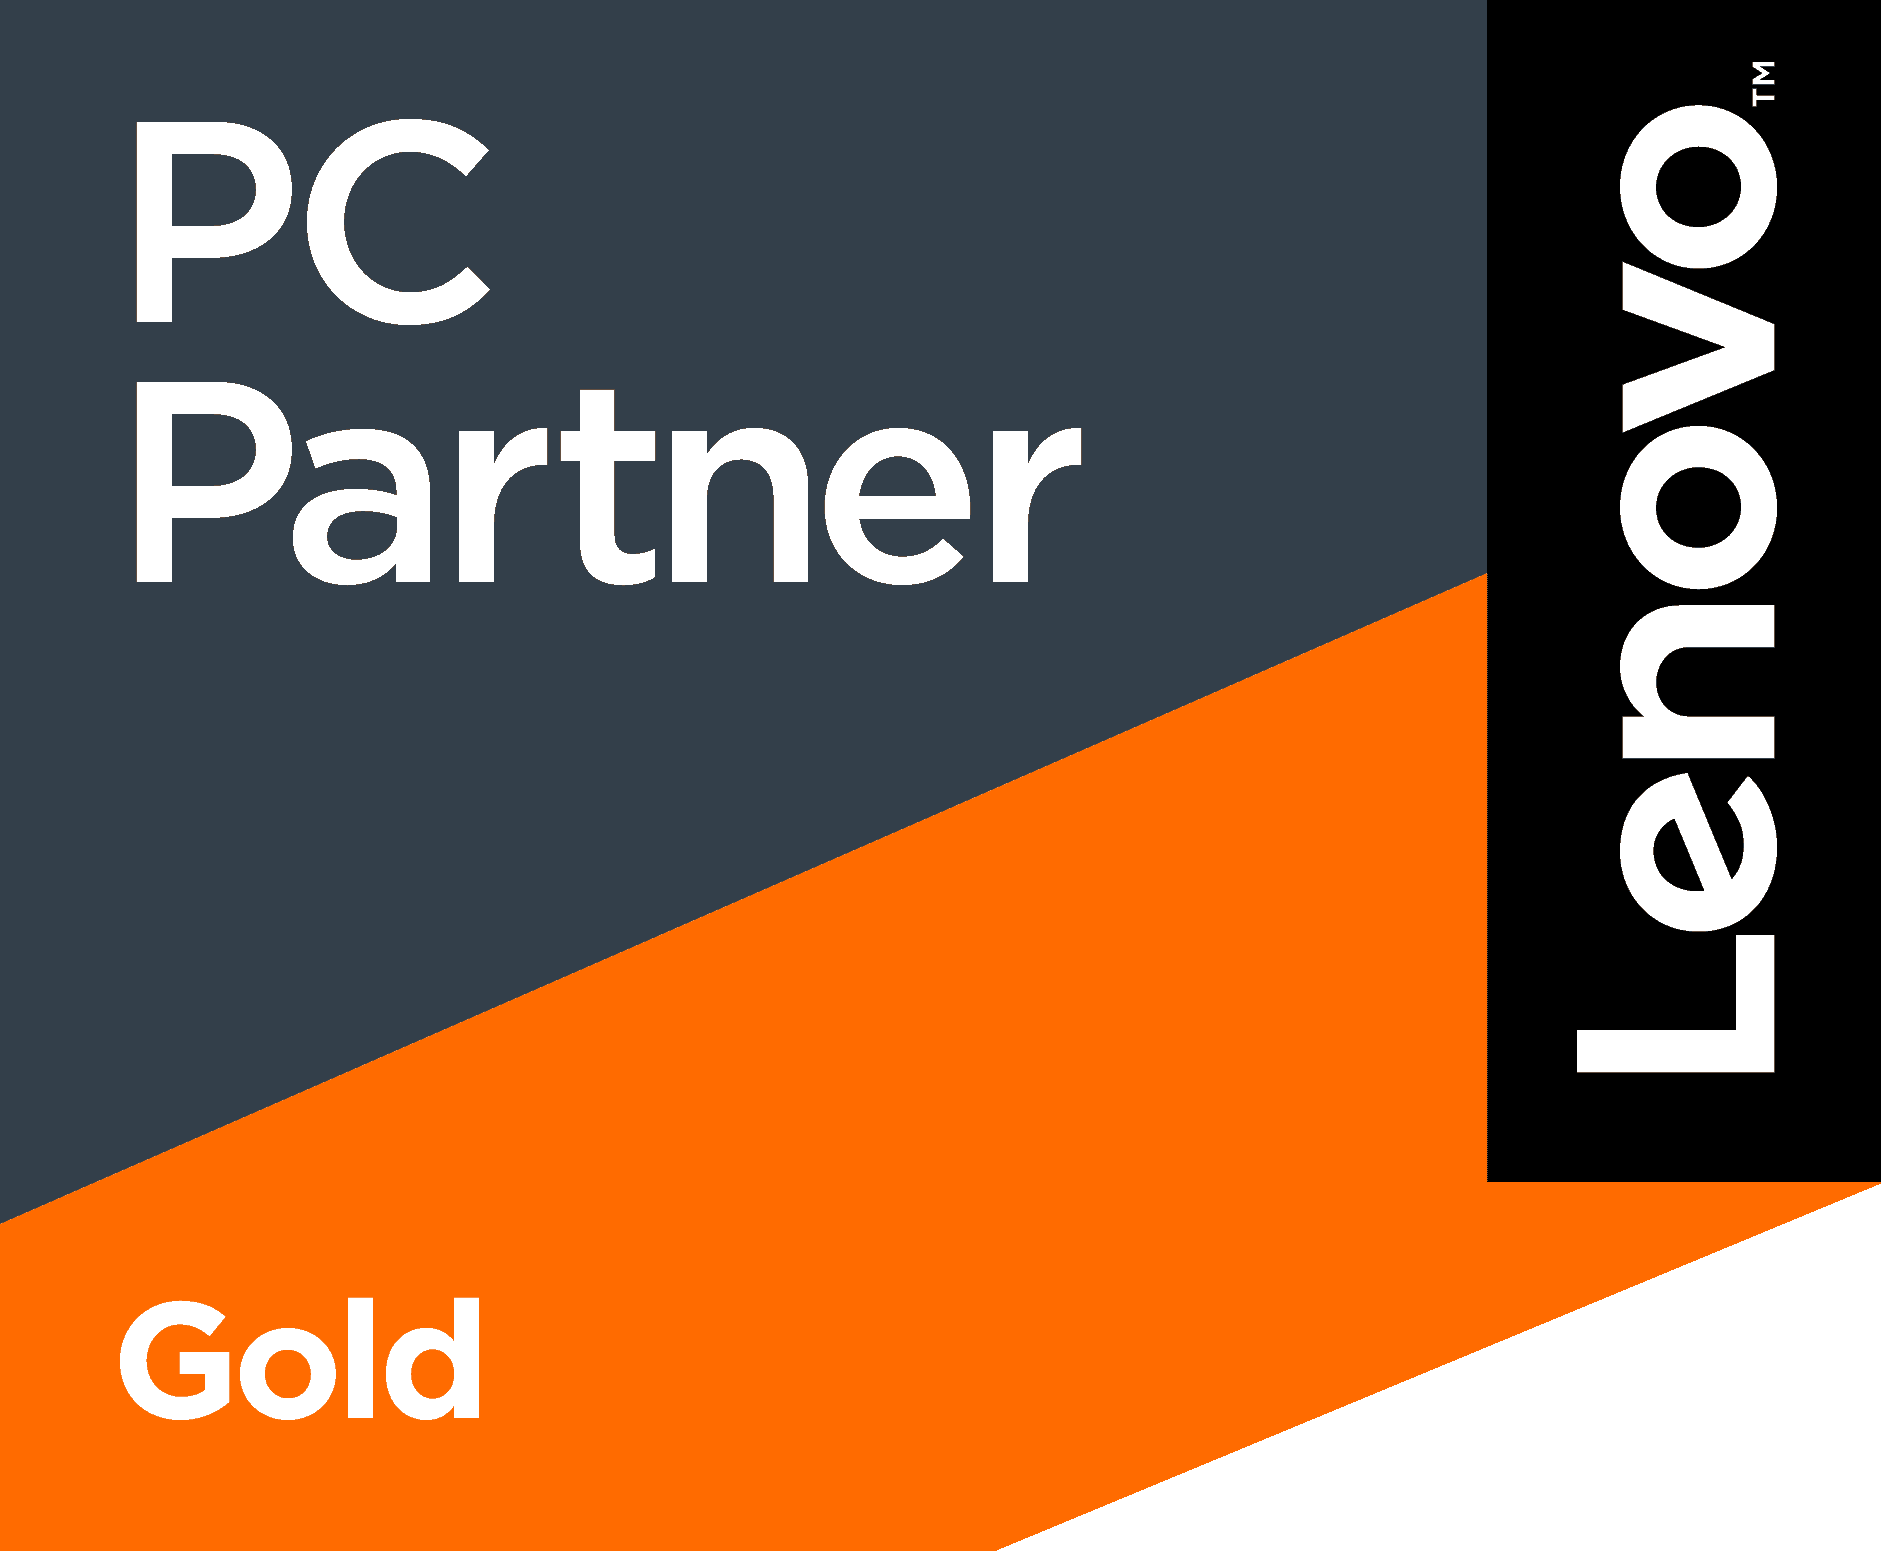 Lenovo Gold PC Partner